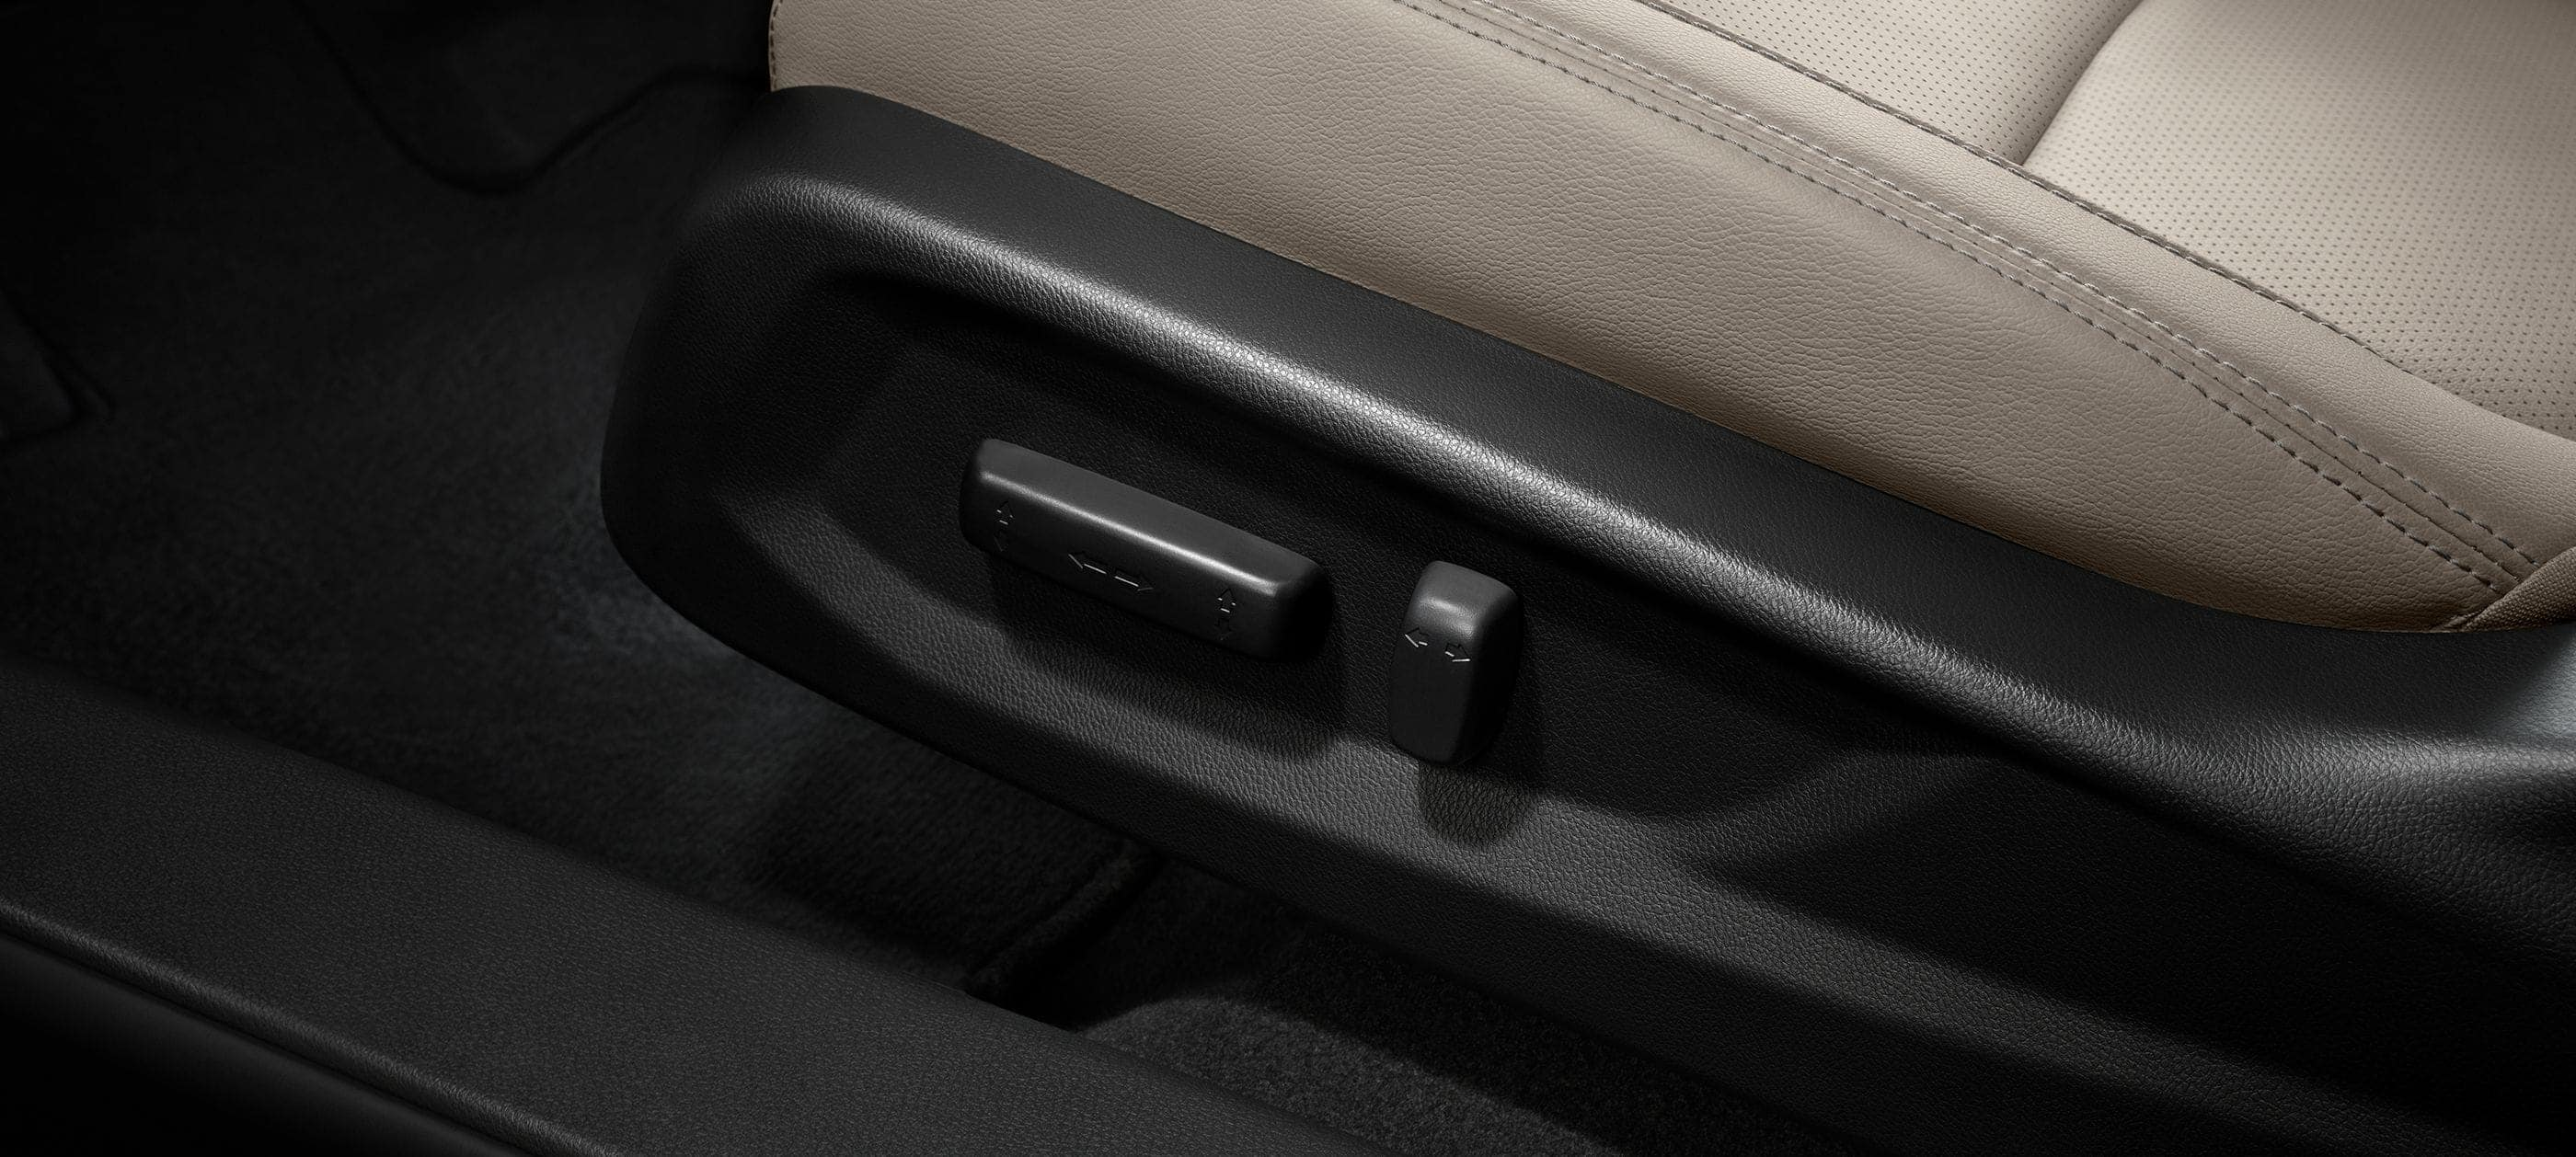 Detail of 8-way power-adjustable driver seat controls.